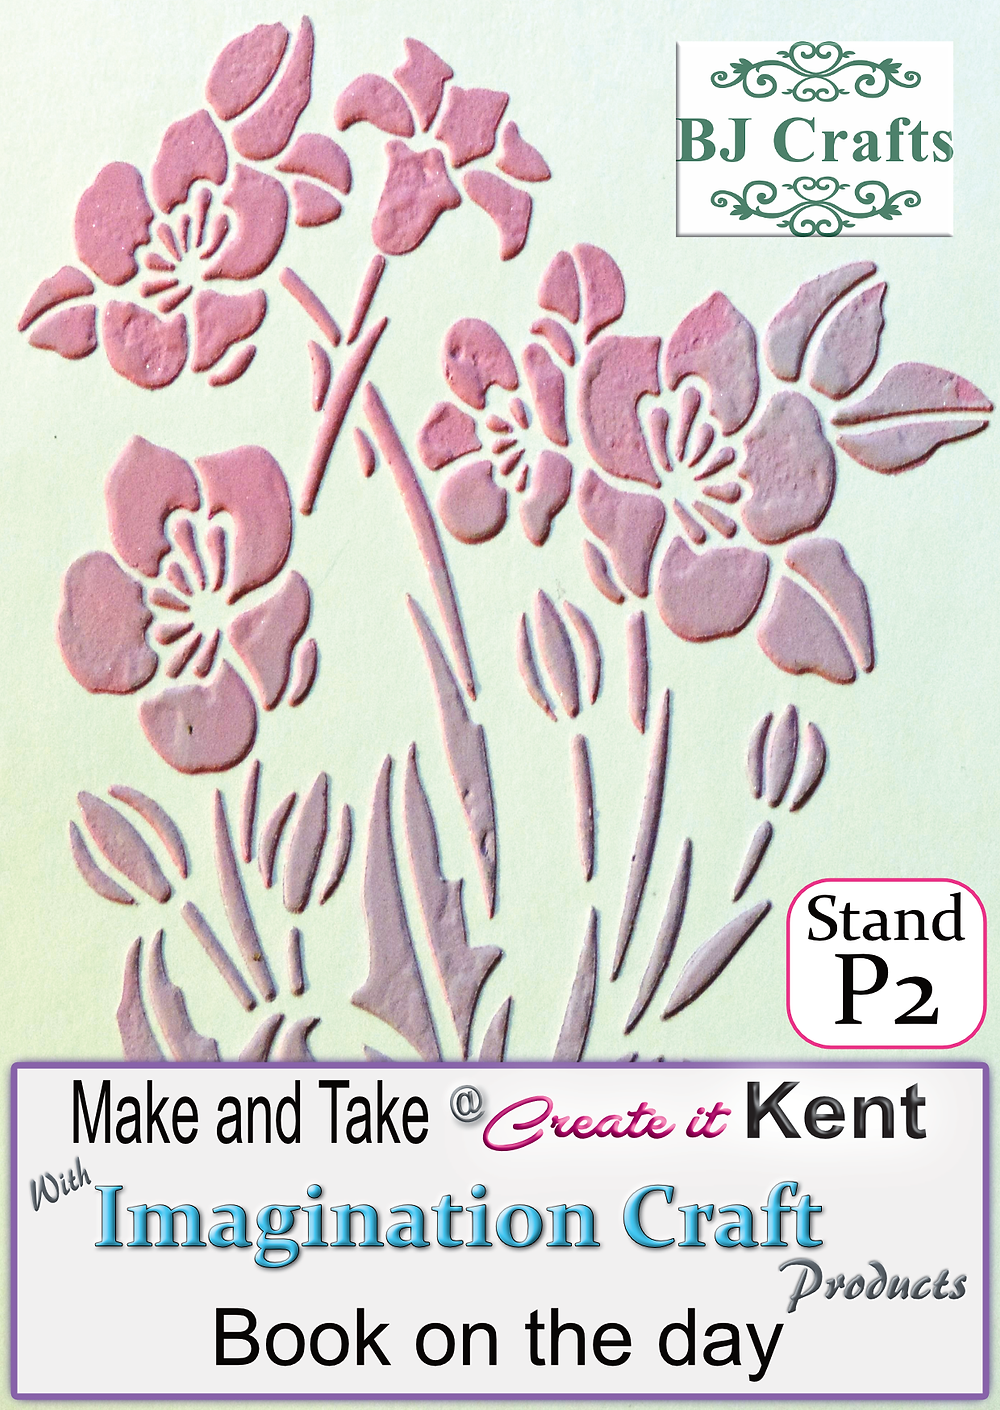 BJ Crafts with Imagination Crafts at Create it Kent